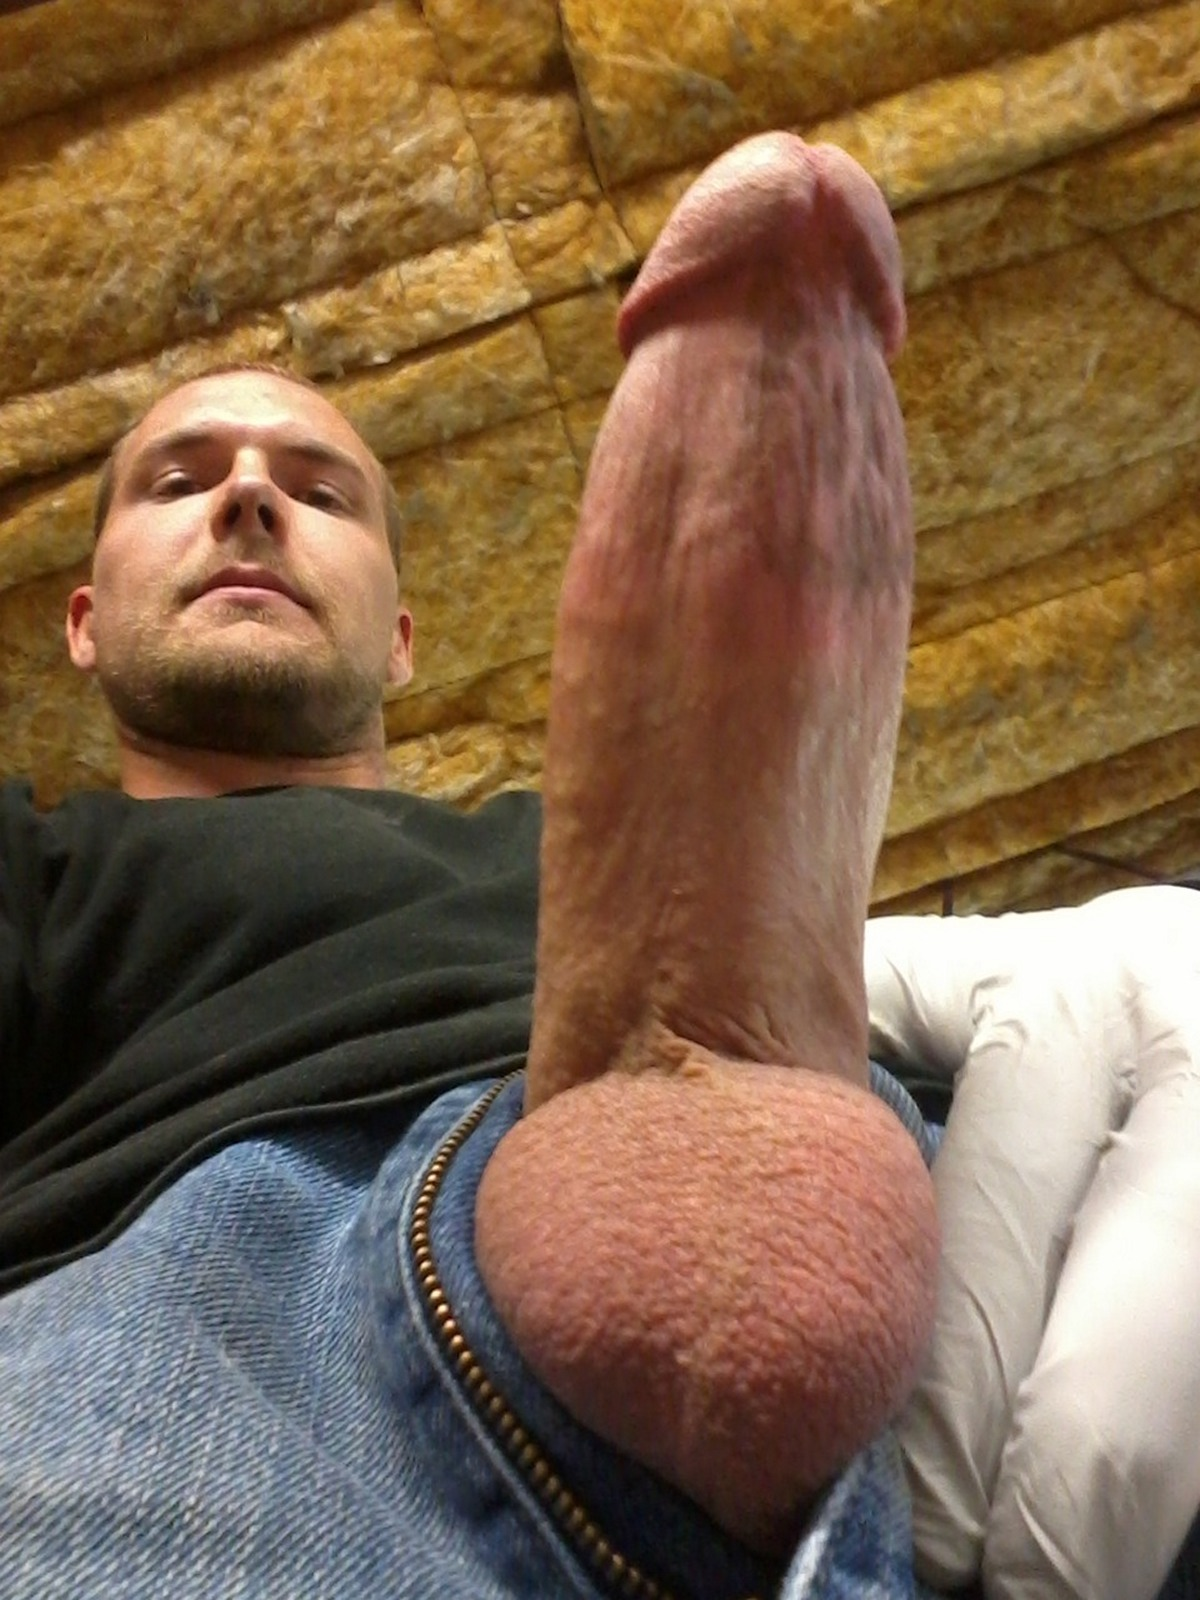 Handsome Blond Smooth Guy Jerks Off His Big Hairy Cock Twice